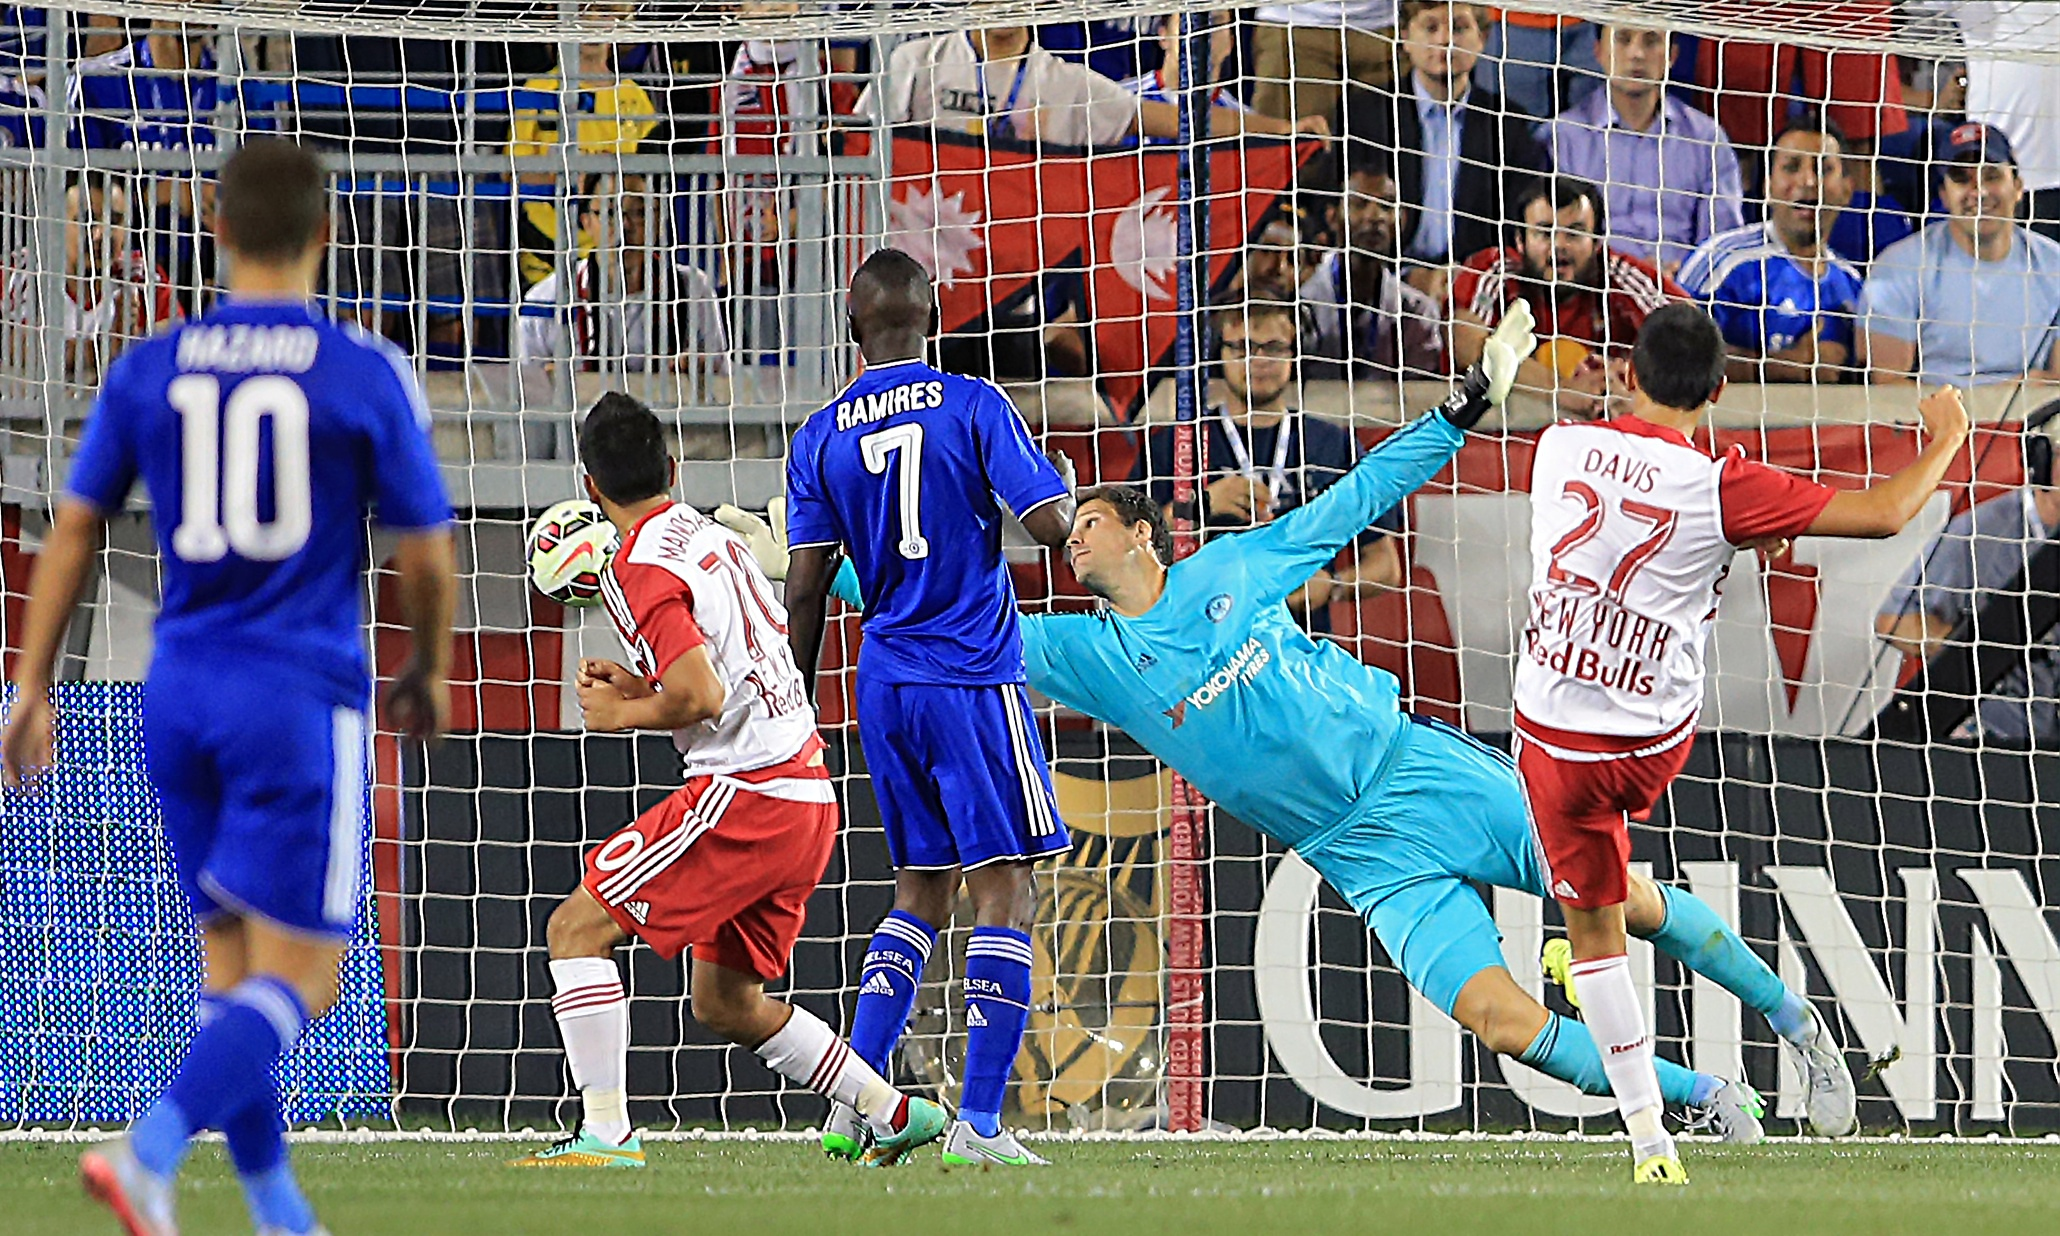 Chelsea concede four second-half goals in defeat to New York Red Bulls